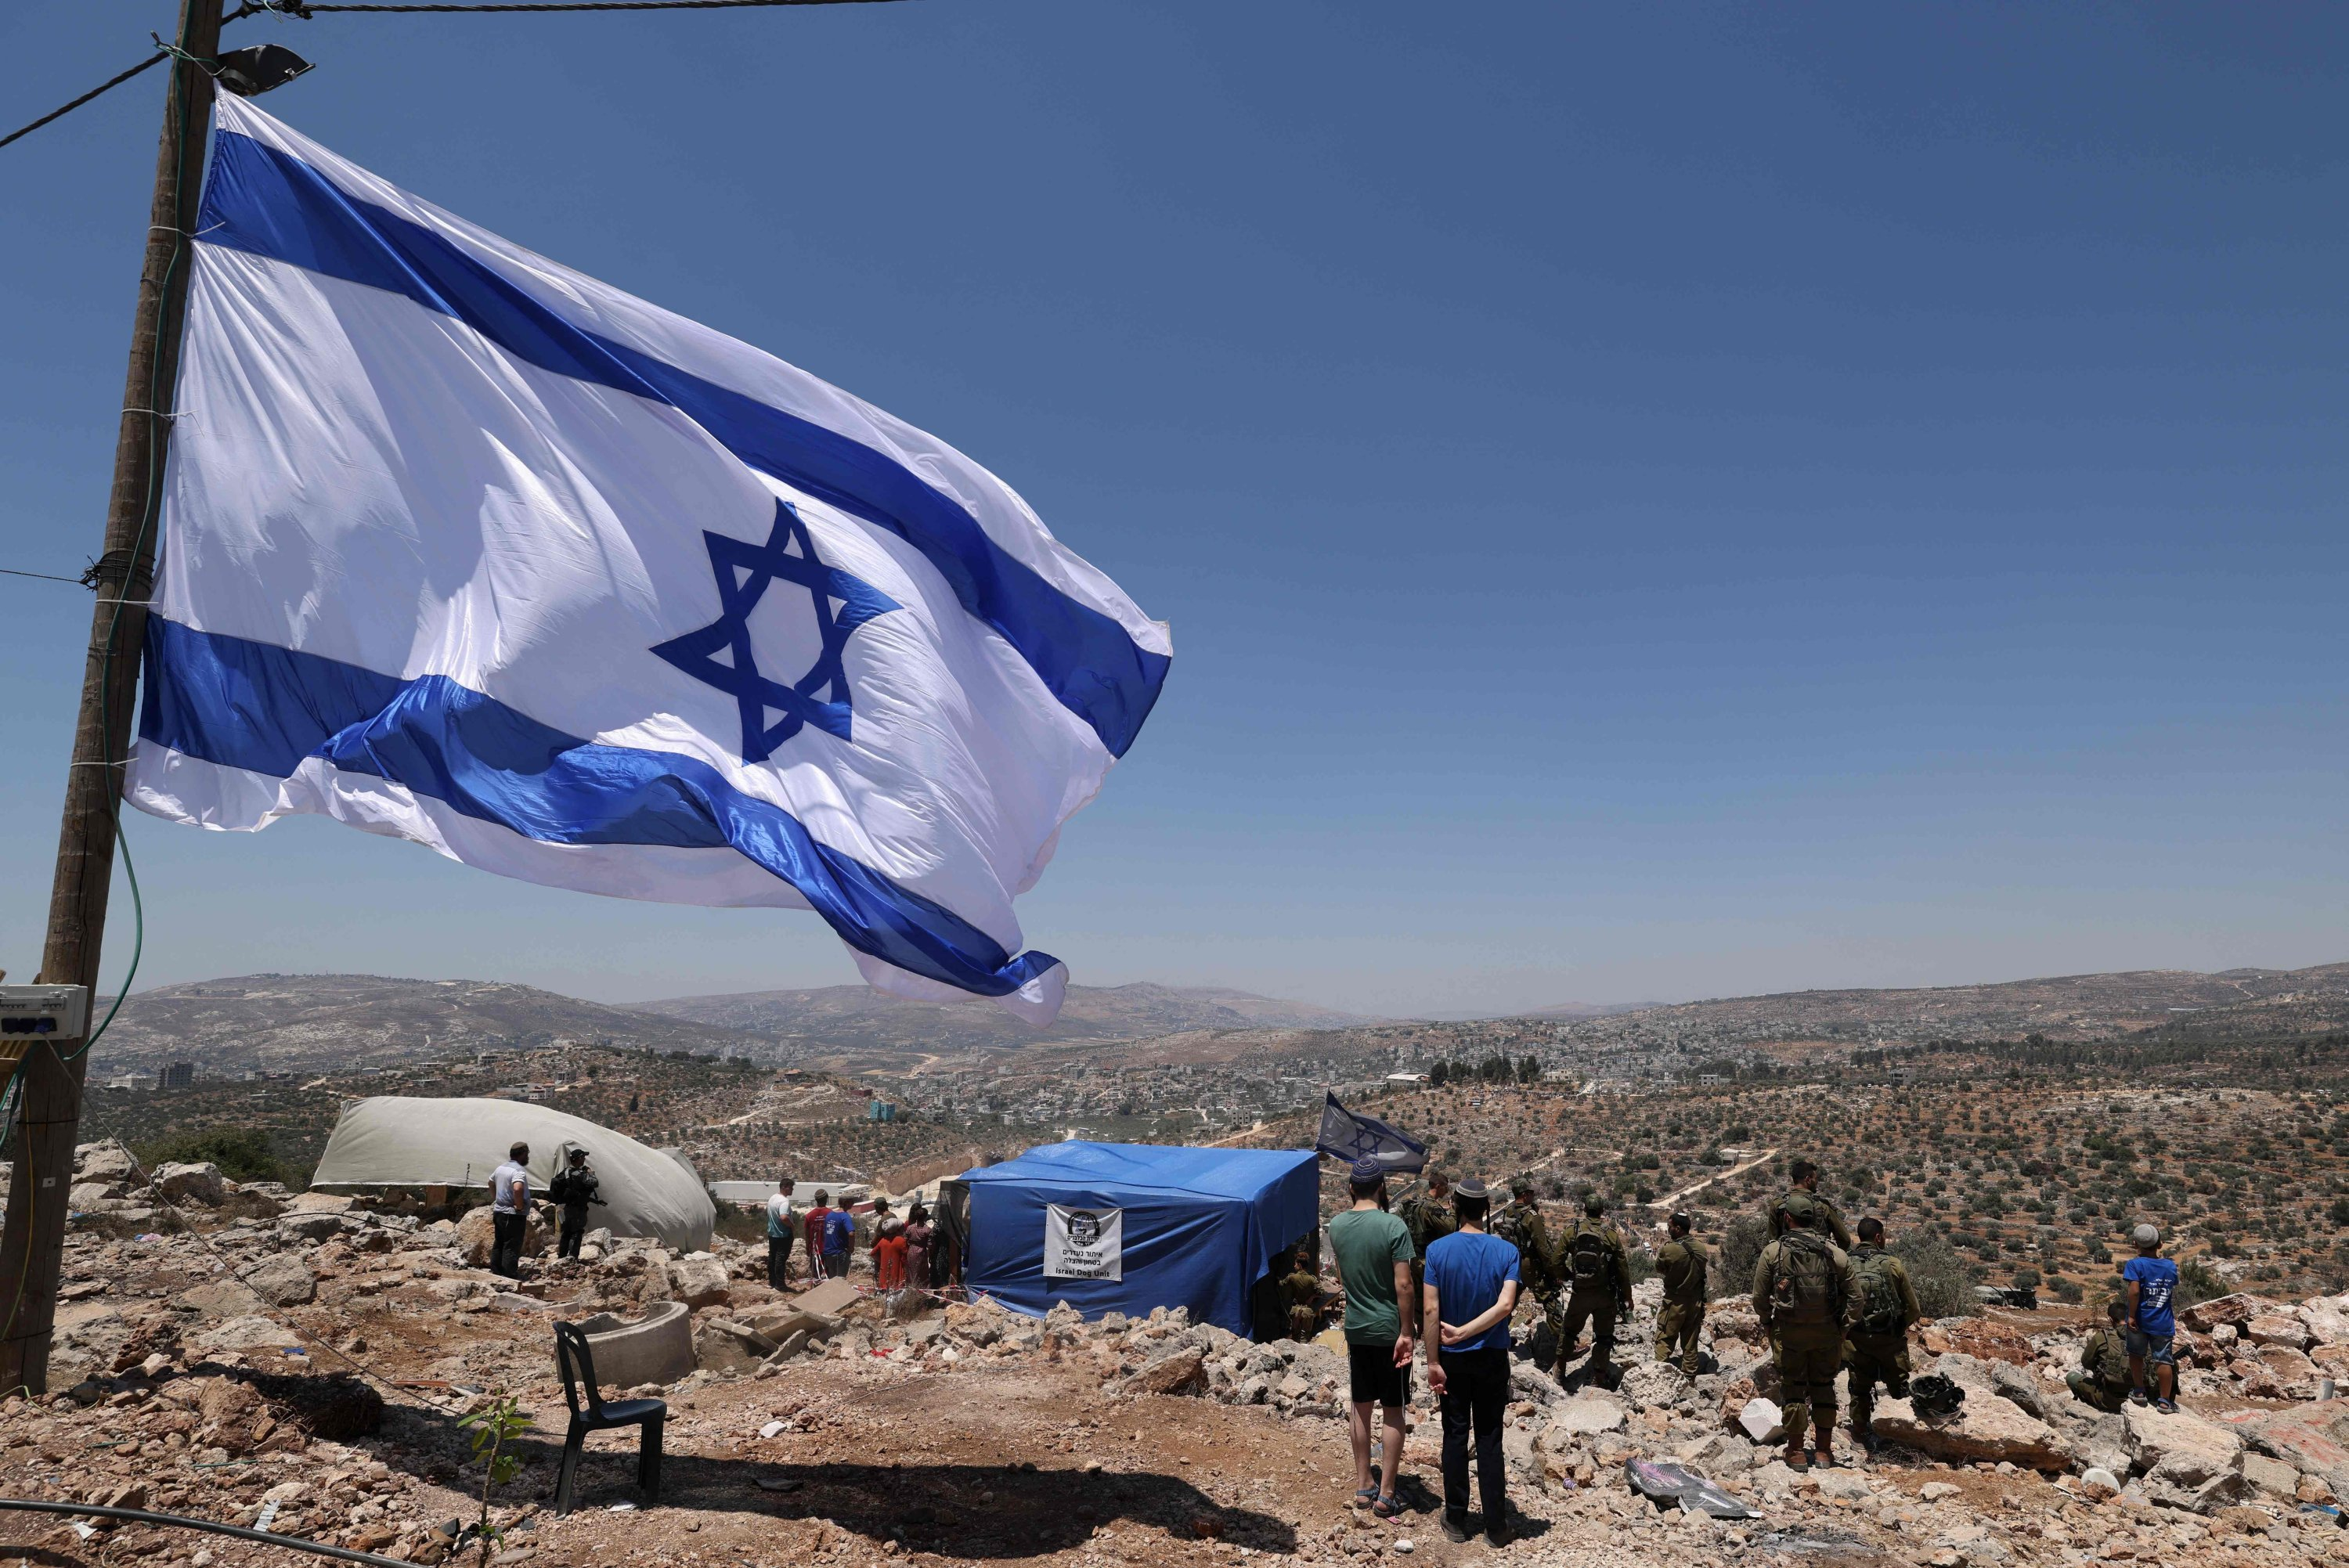 Israeli soldiers and settlers stare at the Palestinian village of Beita before evacuating the newly established wildcat outpost of Eviatar in Beita, near the northern Palestinian city of Nablus in the occupied West Bank, Palestine, July 2, 2021. (AFP Photo)